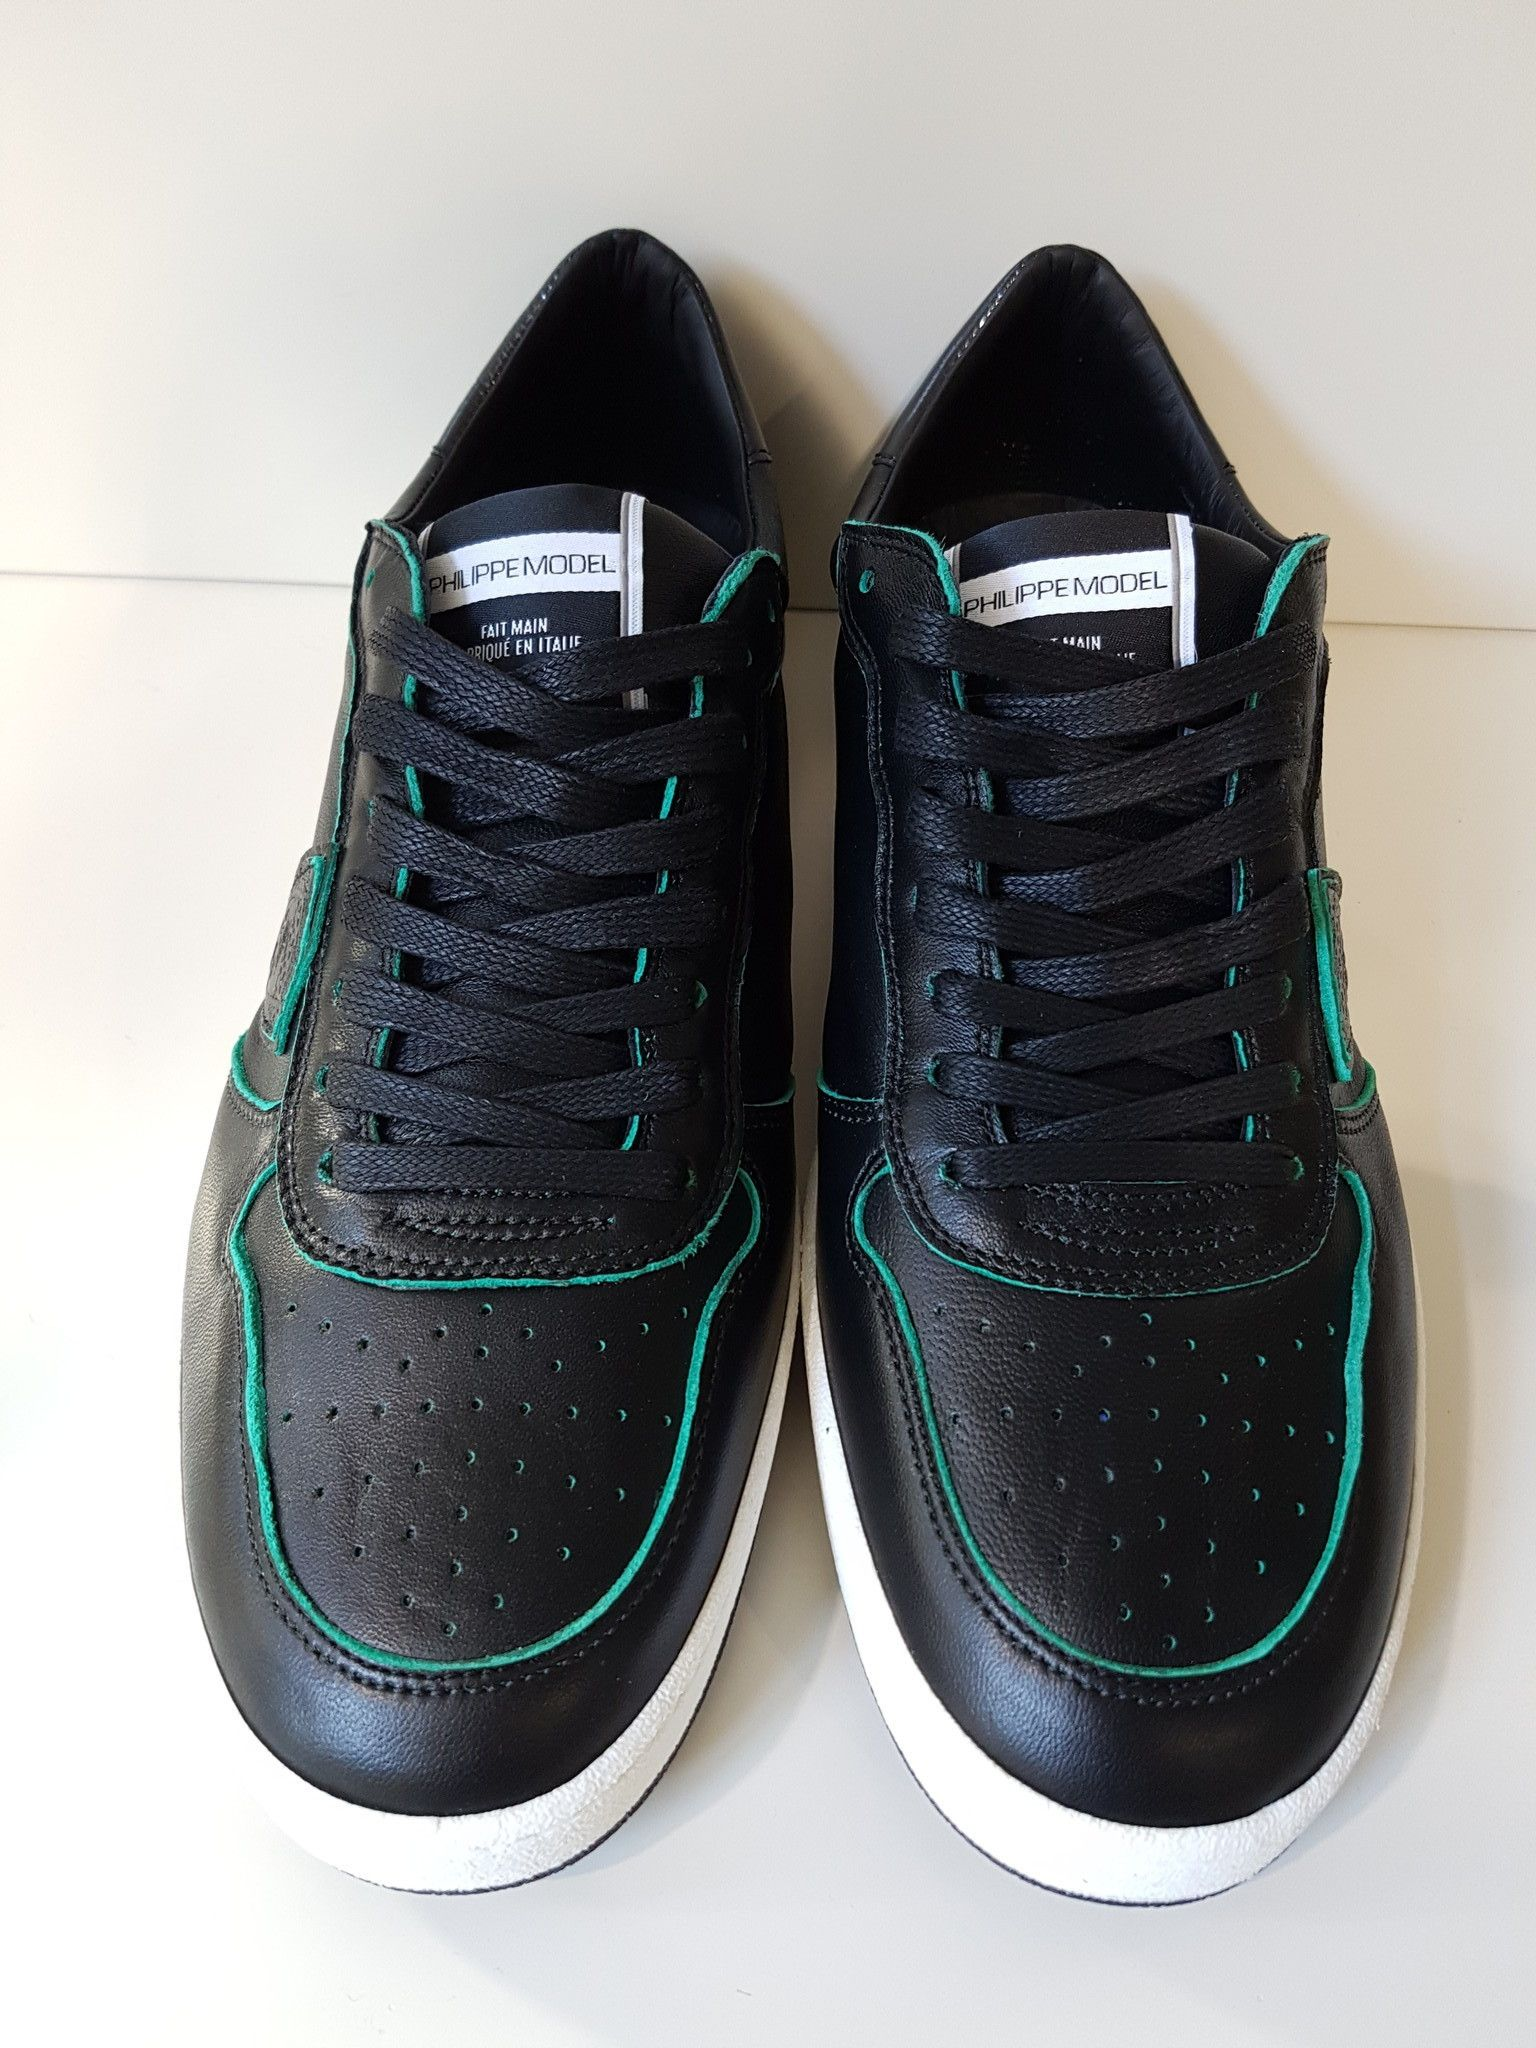 PHILIPPE MODEL LAKERS VN01 GREEN BLACK